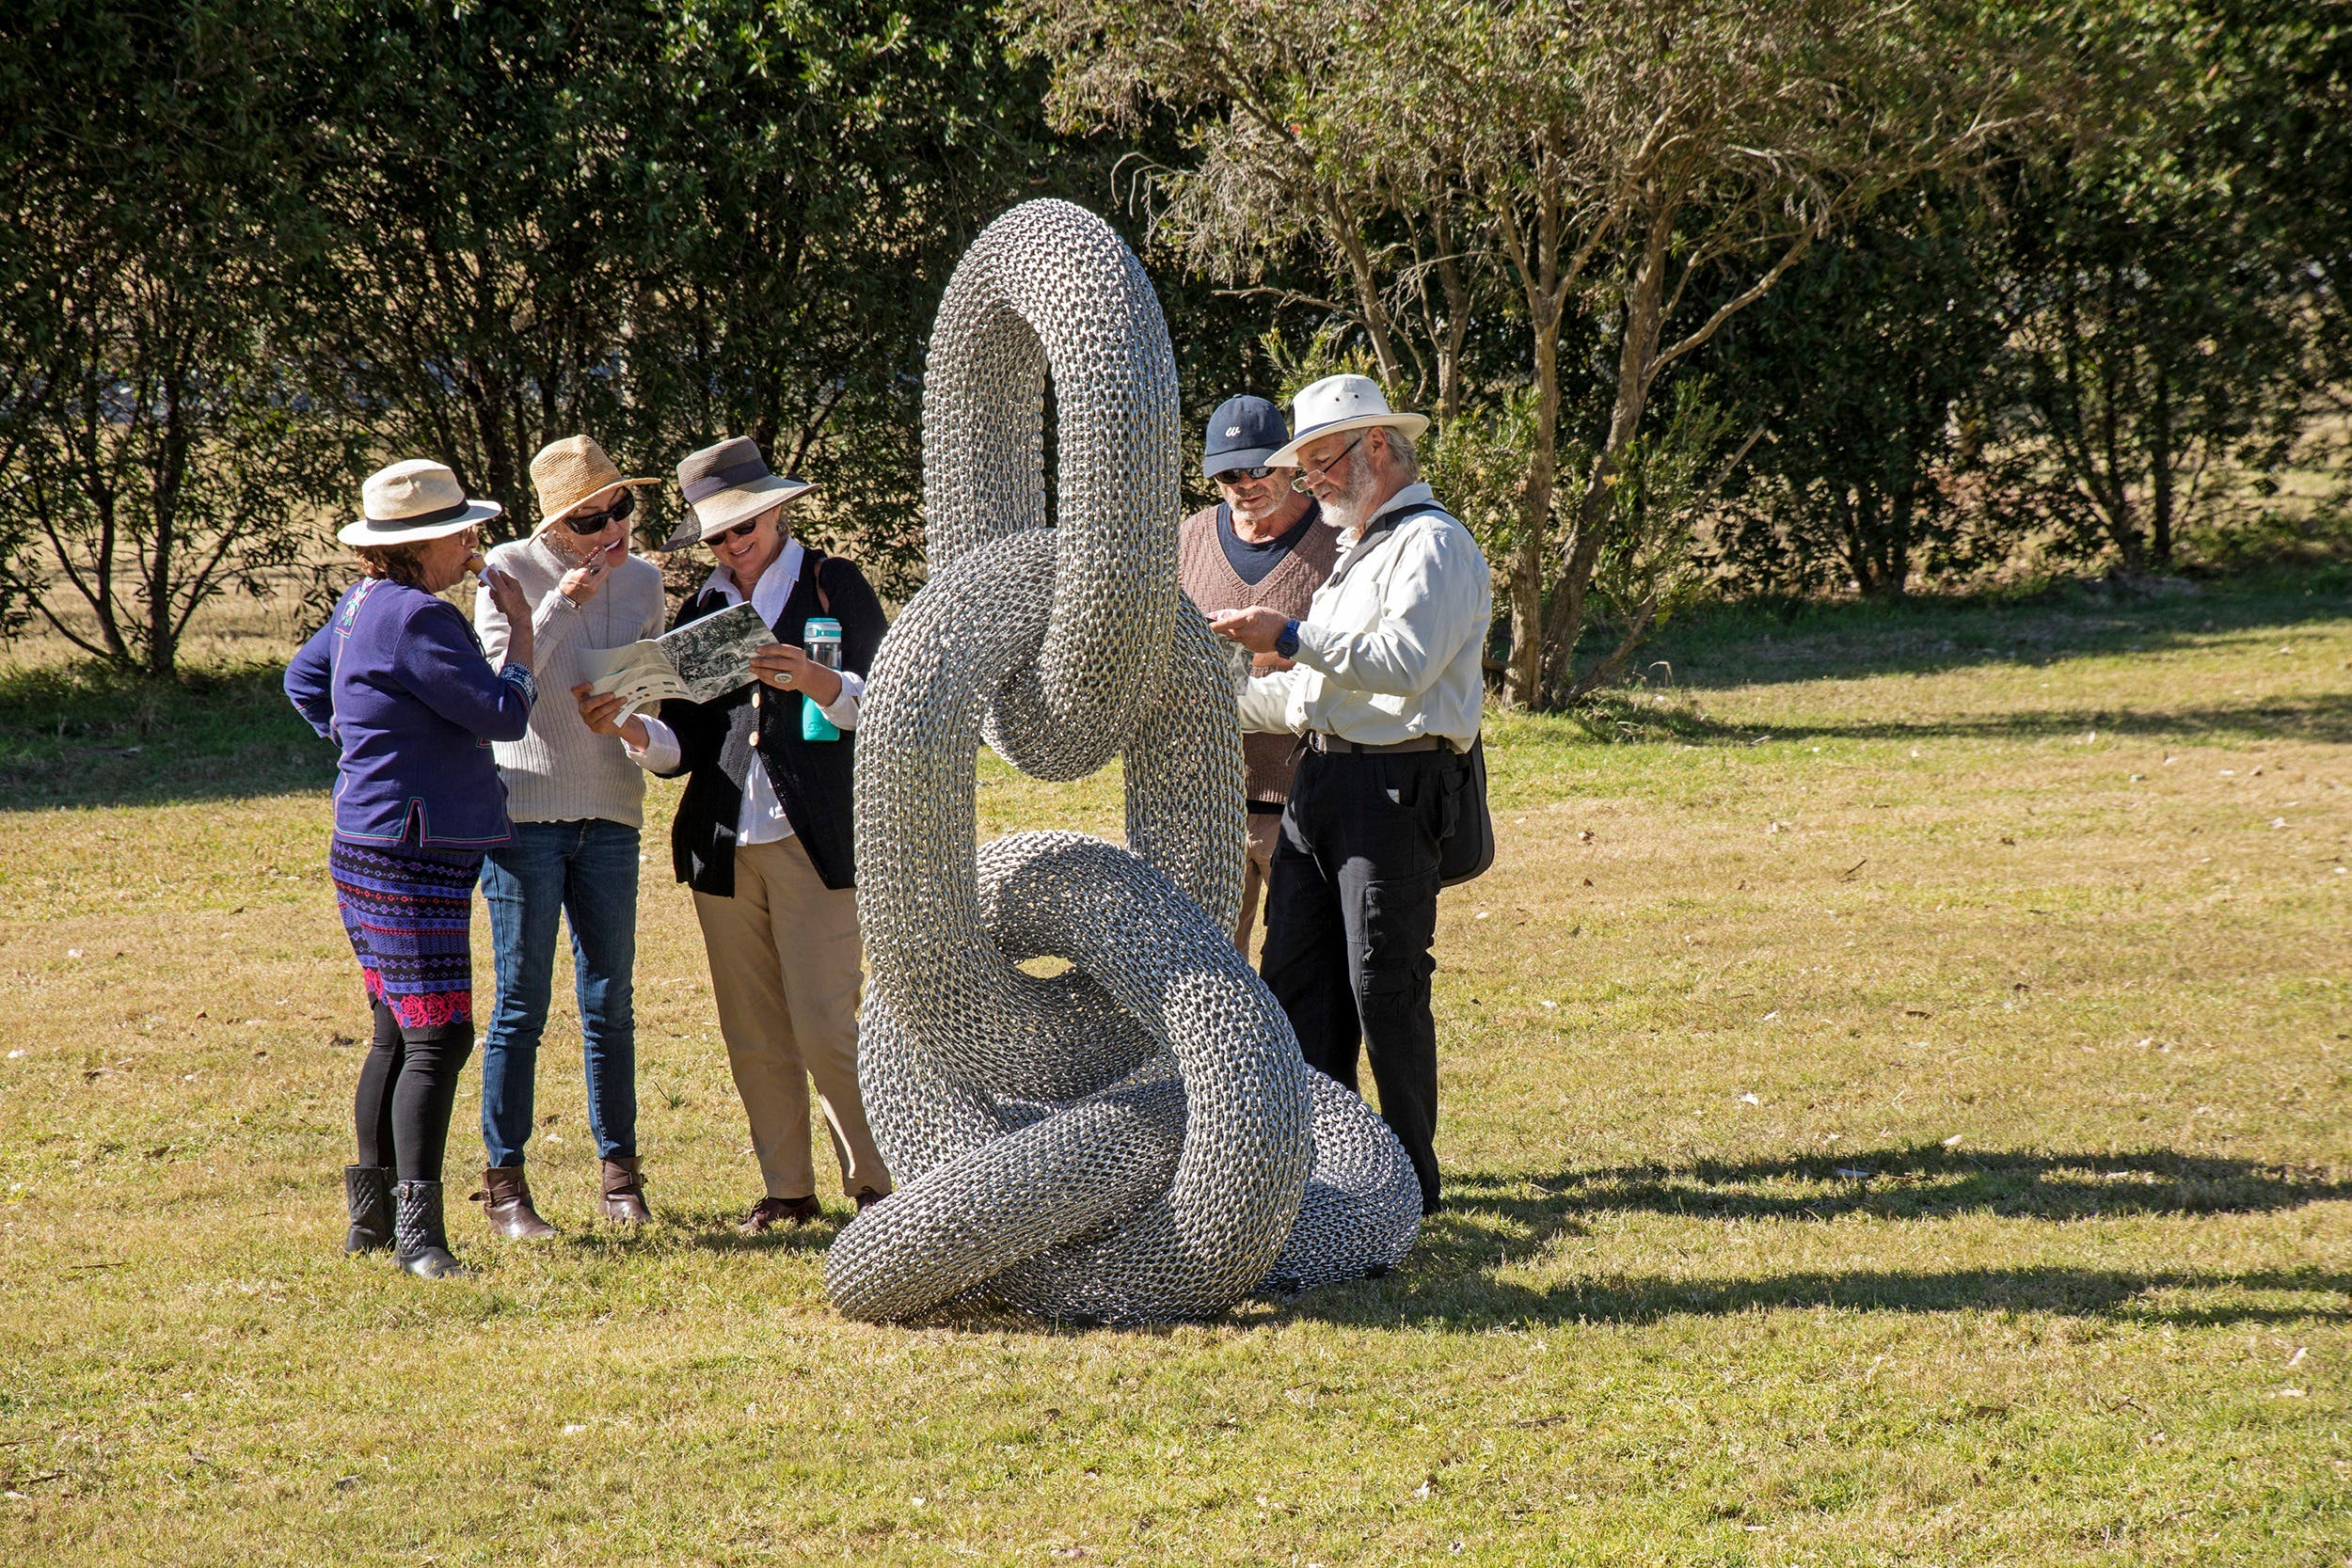 Sculpture for Clyde - Outdoor Exhibition - Australia Accommodation